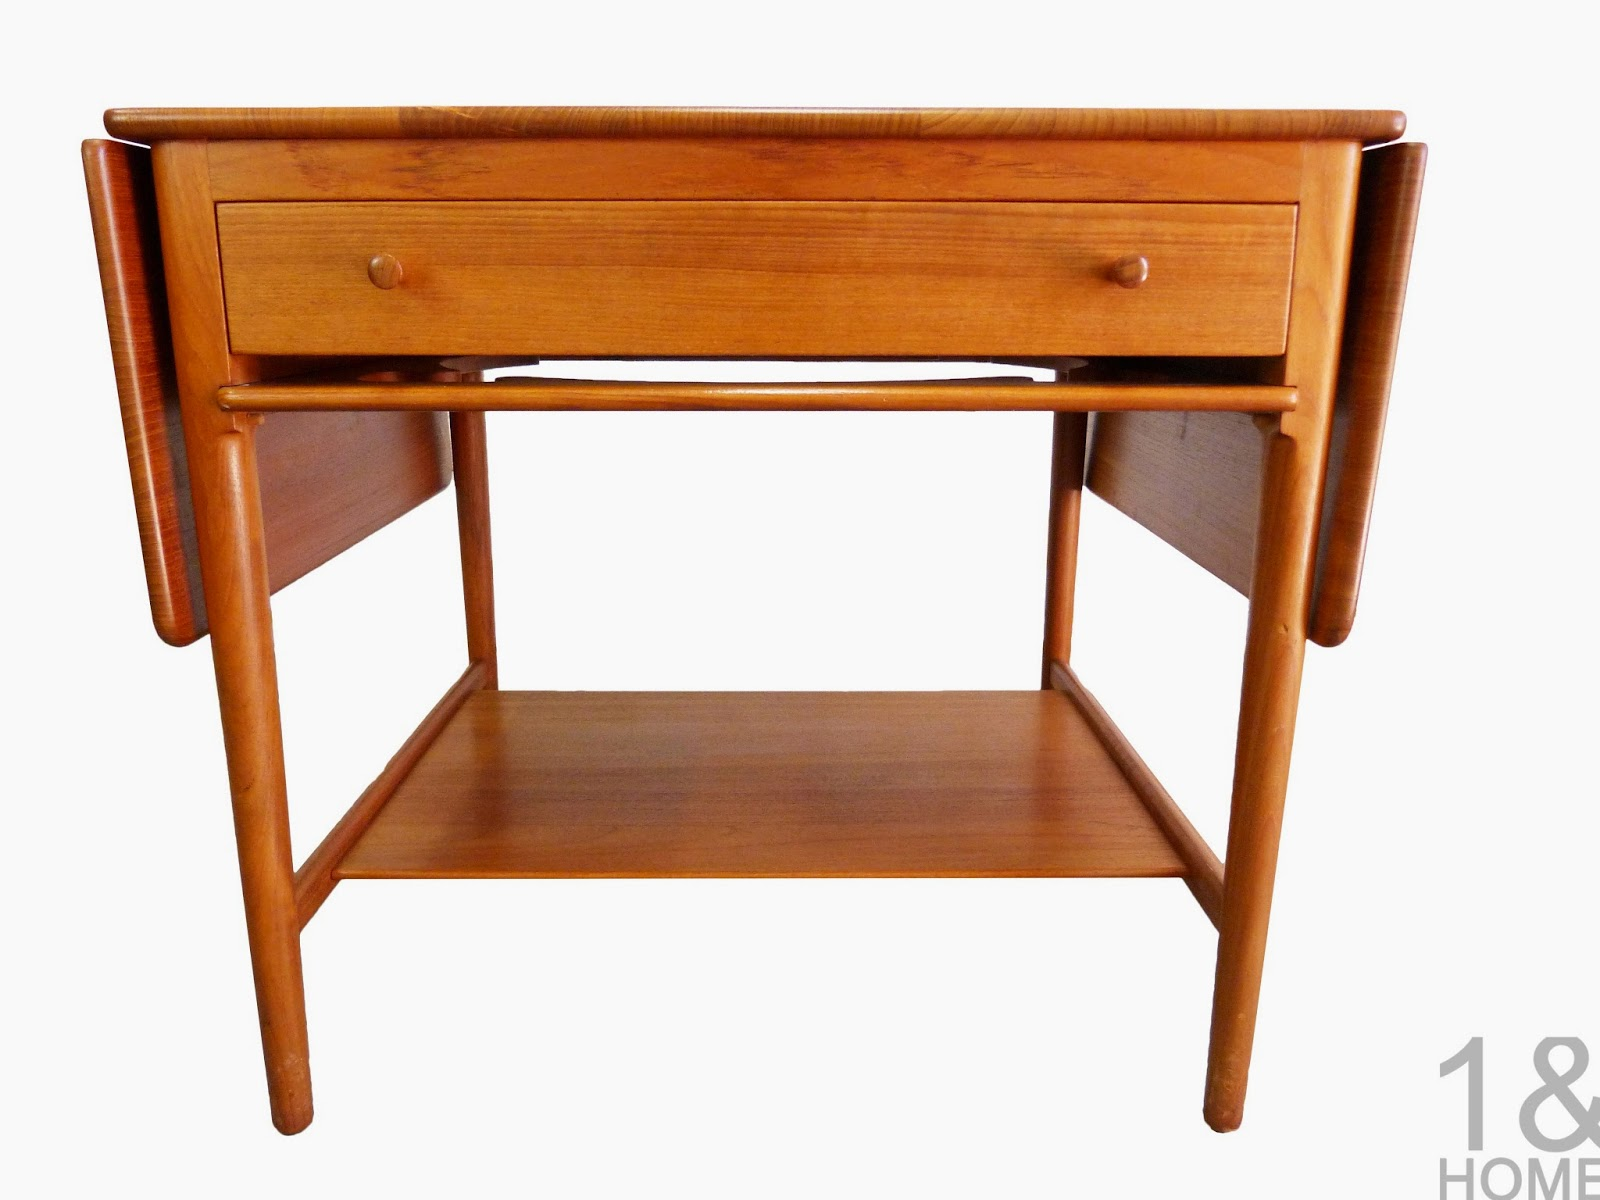 Hans Wegner Andreas Tuck AT-33 Danish Modern Teak Sewing Table